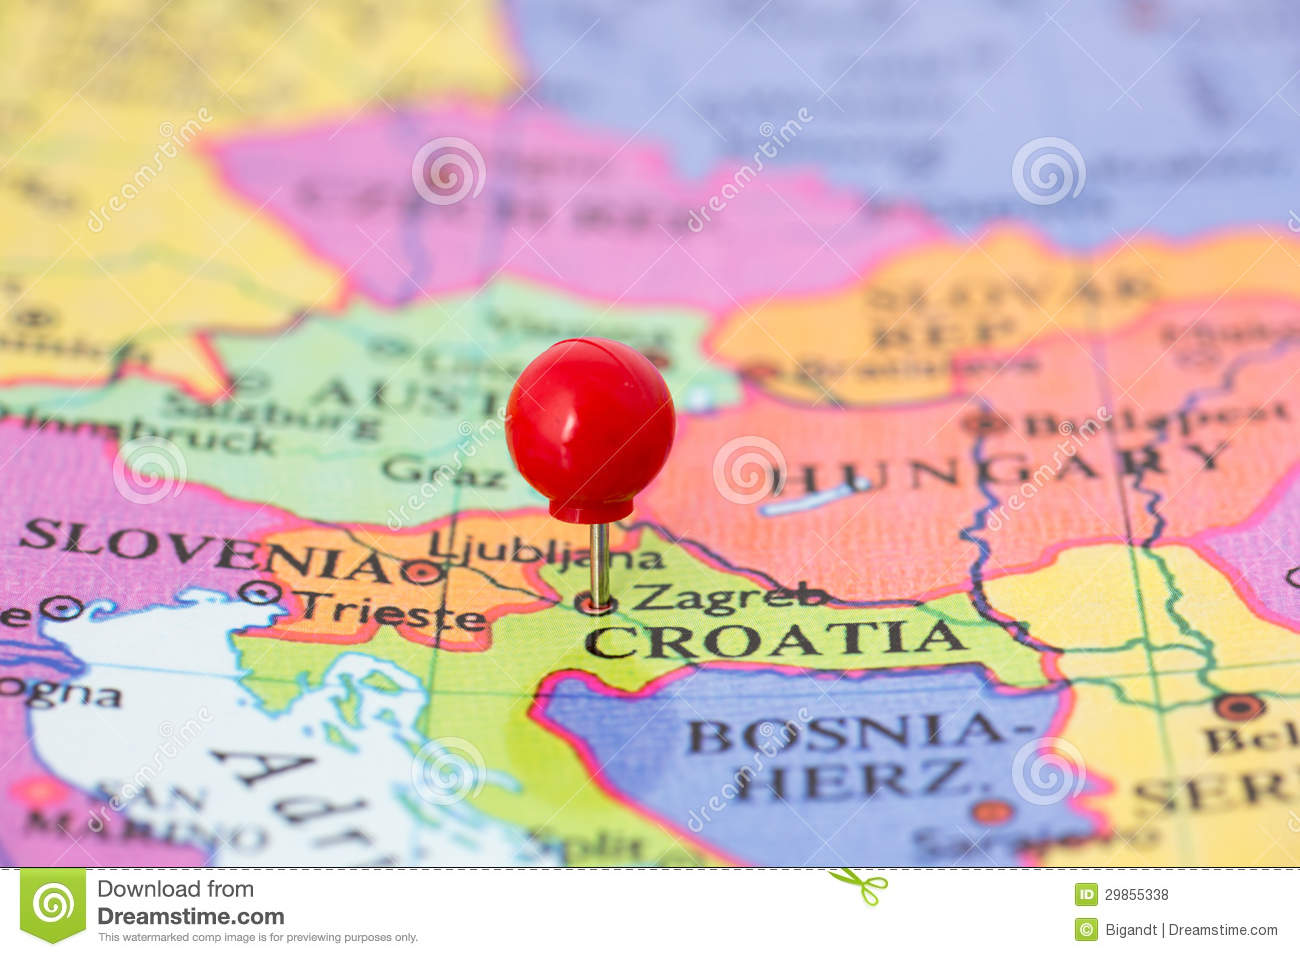 Croatia map part of collection covering all major capitals of europe